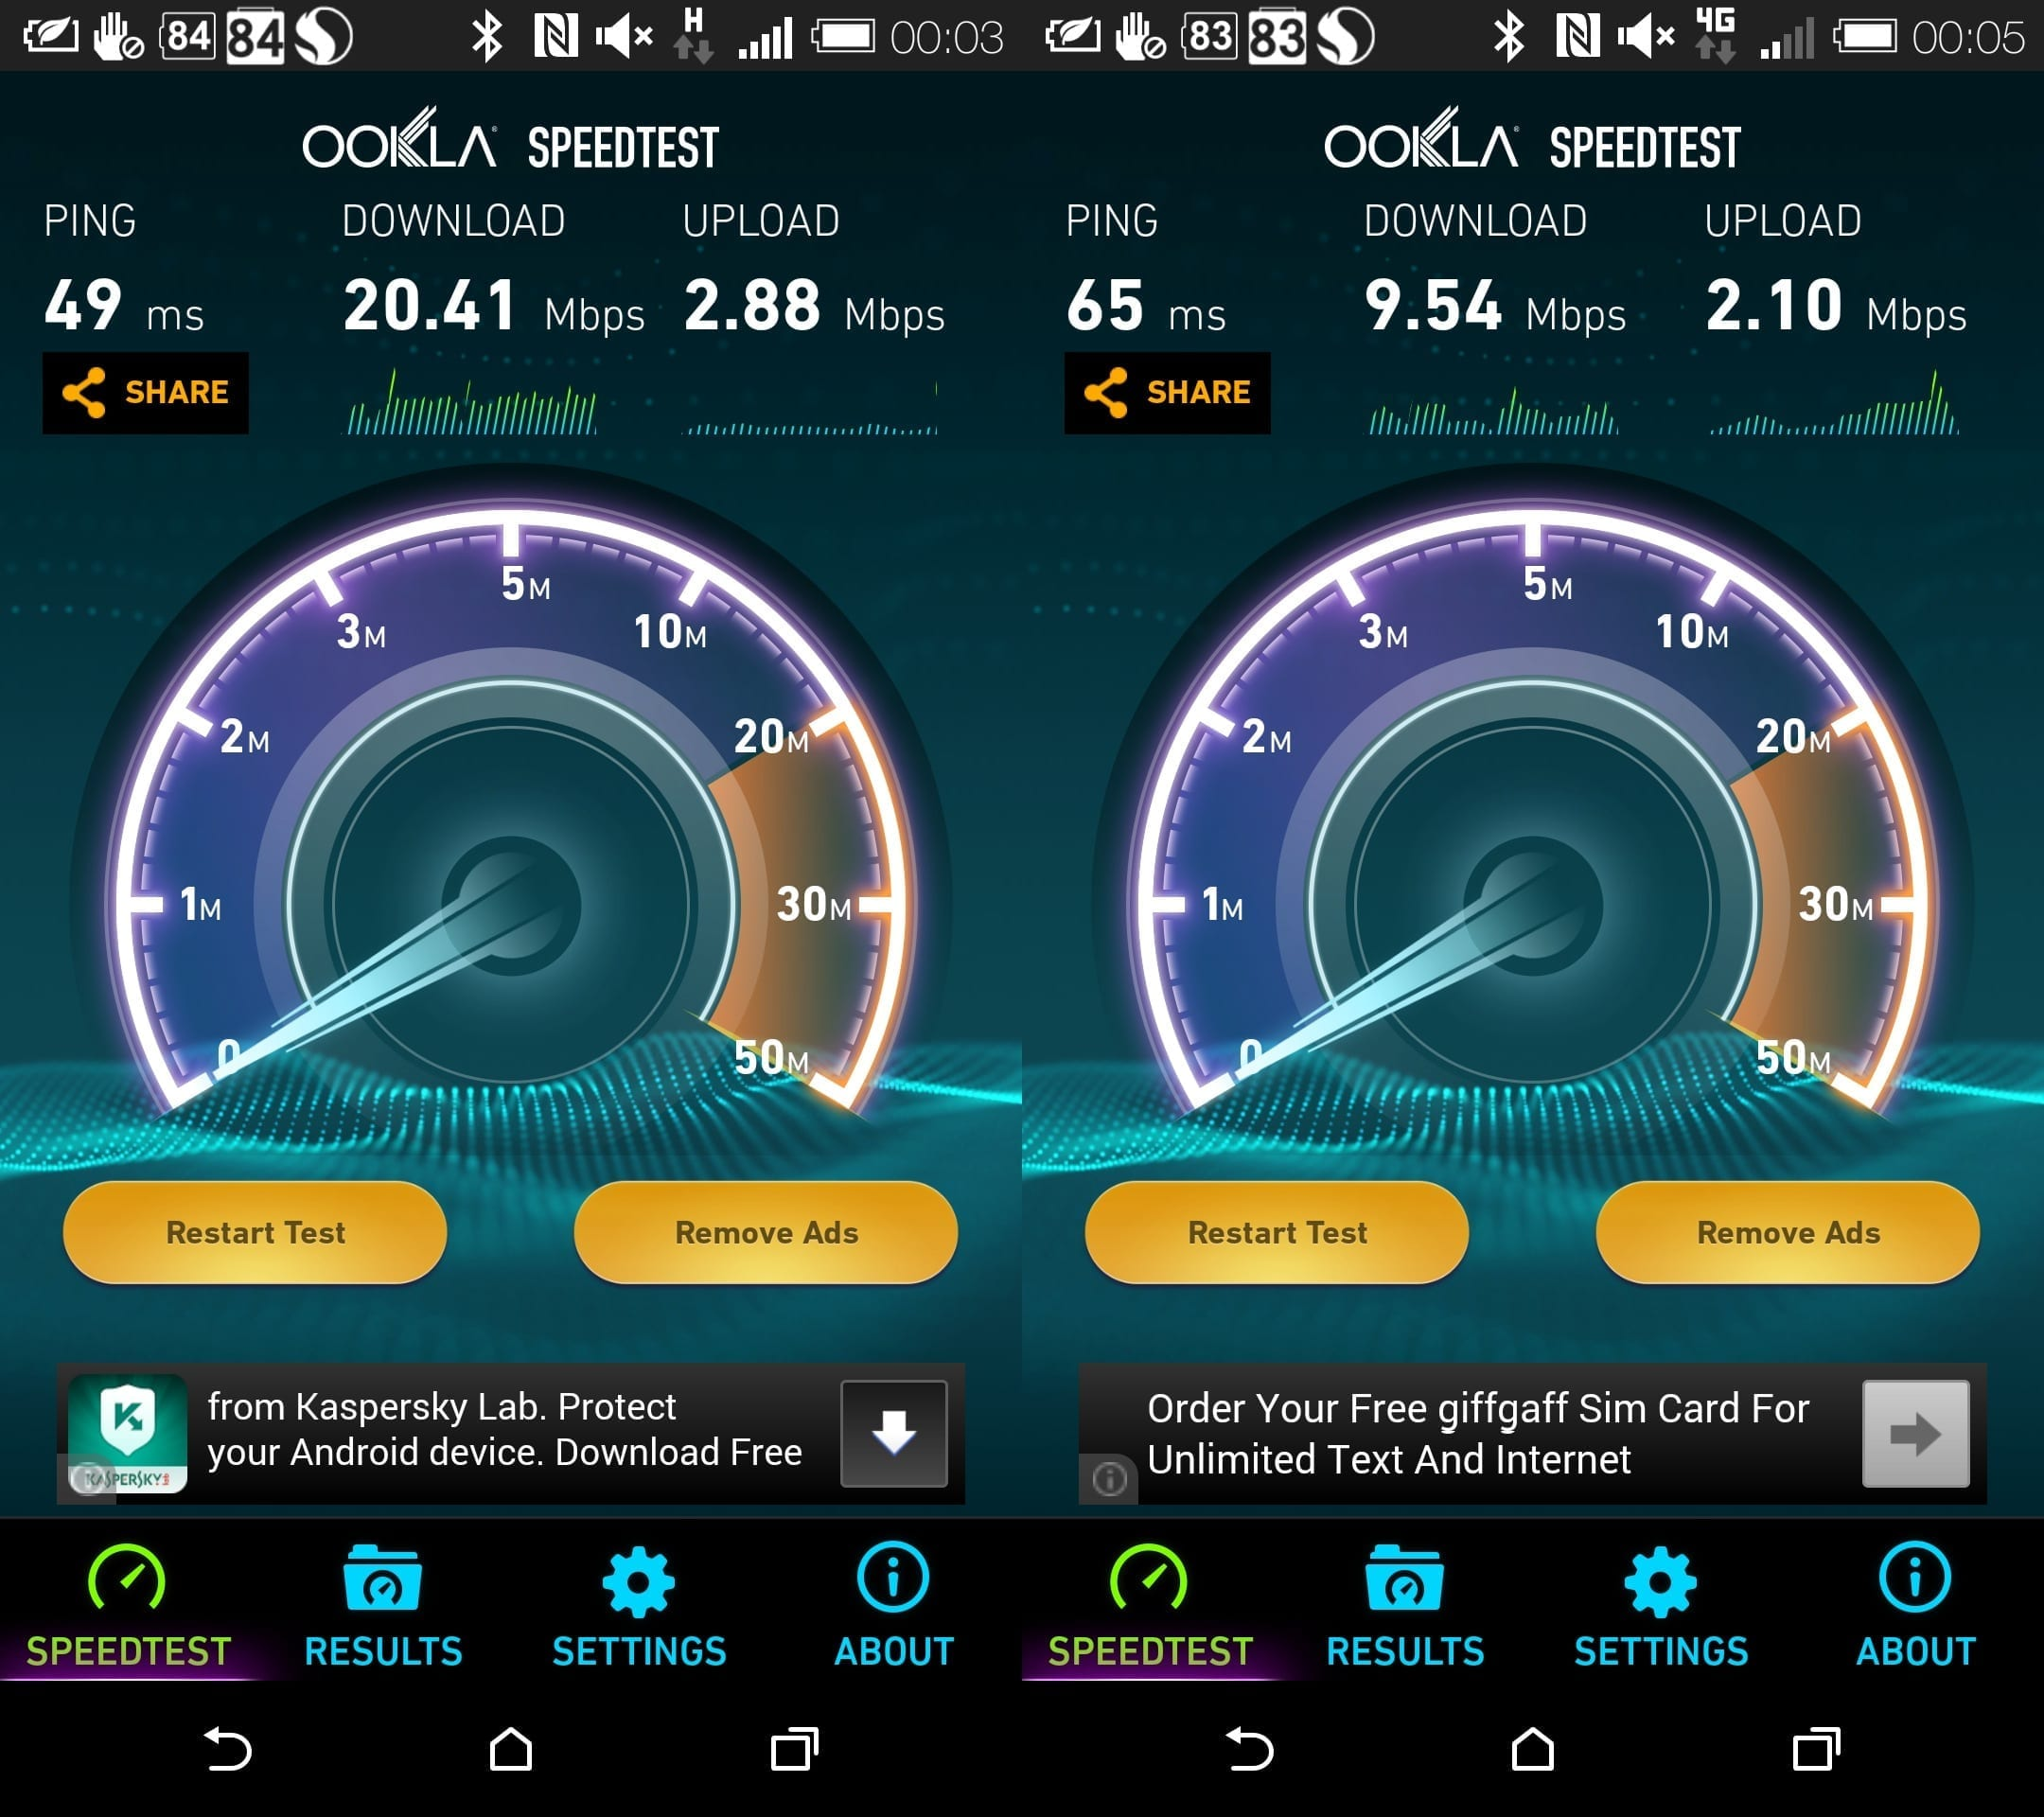 3G vs 4G speedtest